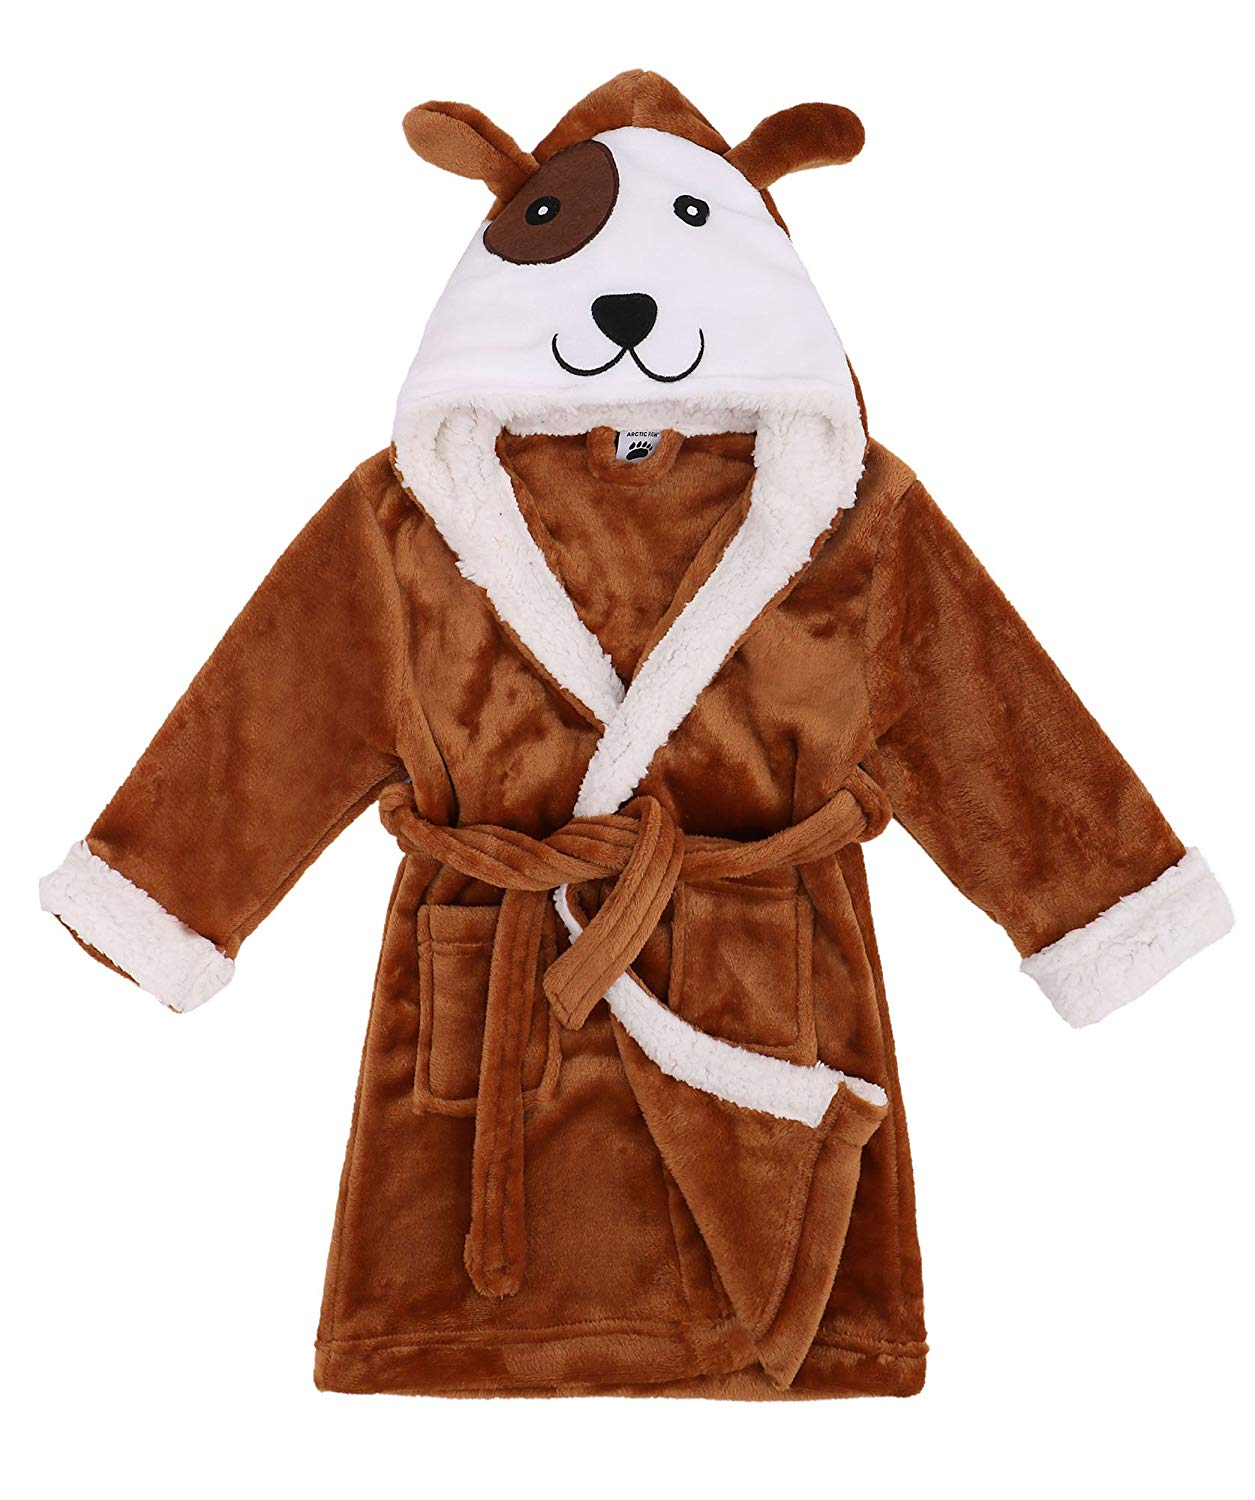 Arctic Paw Boys/Girls' Plush Soft Hooded Bathrobe Theme Party Costume Robe